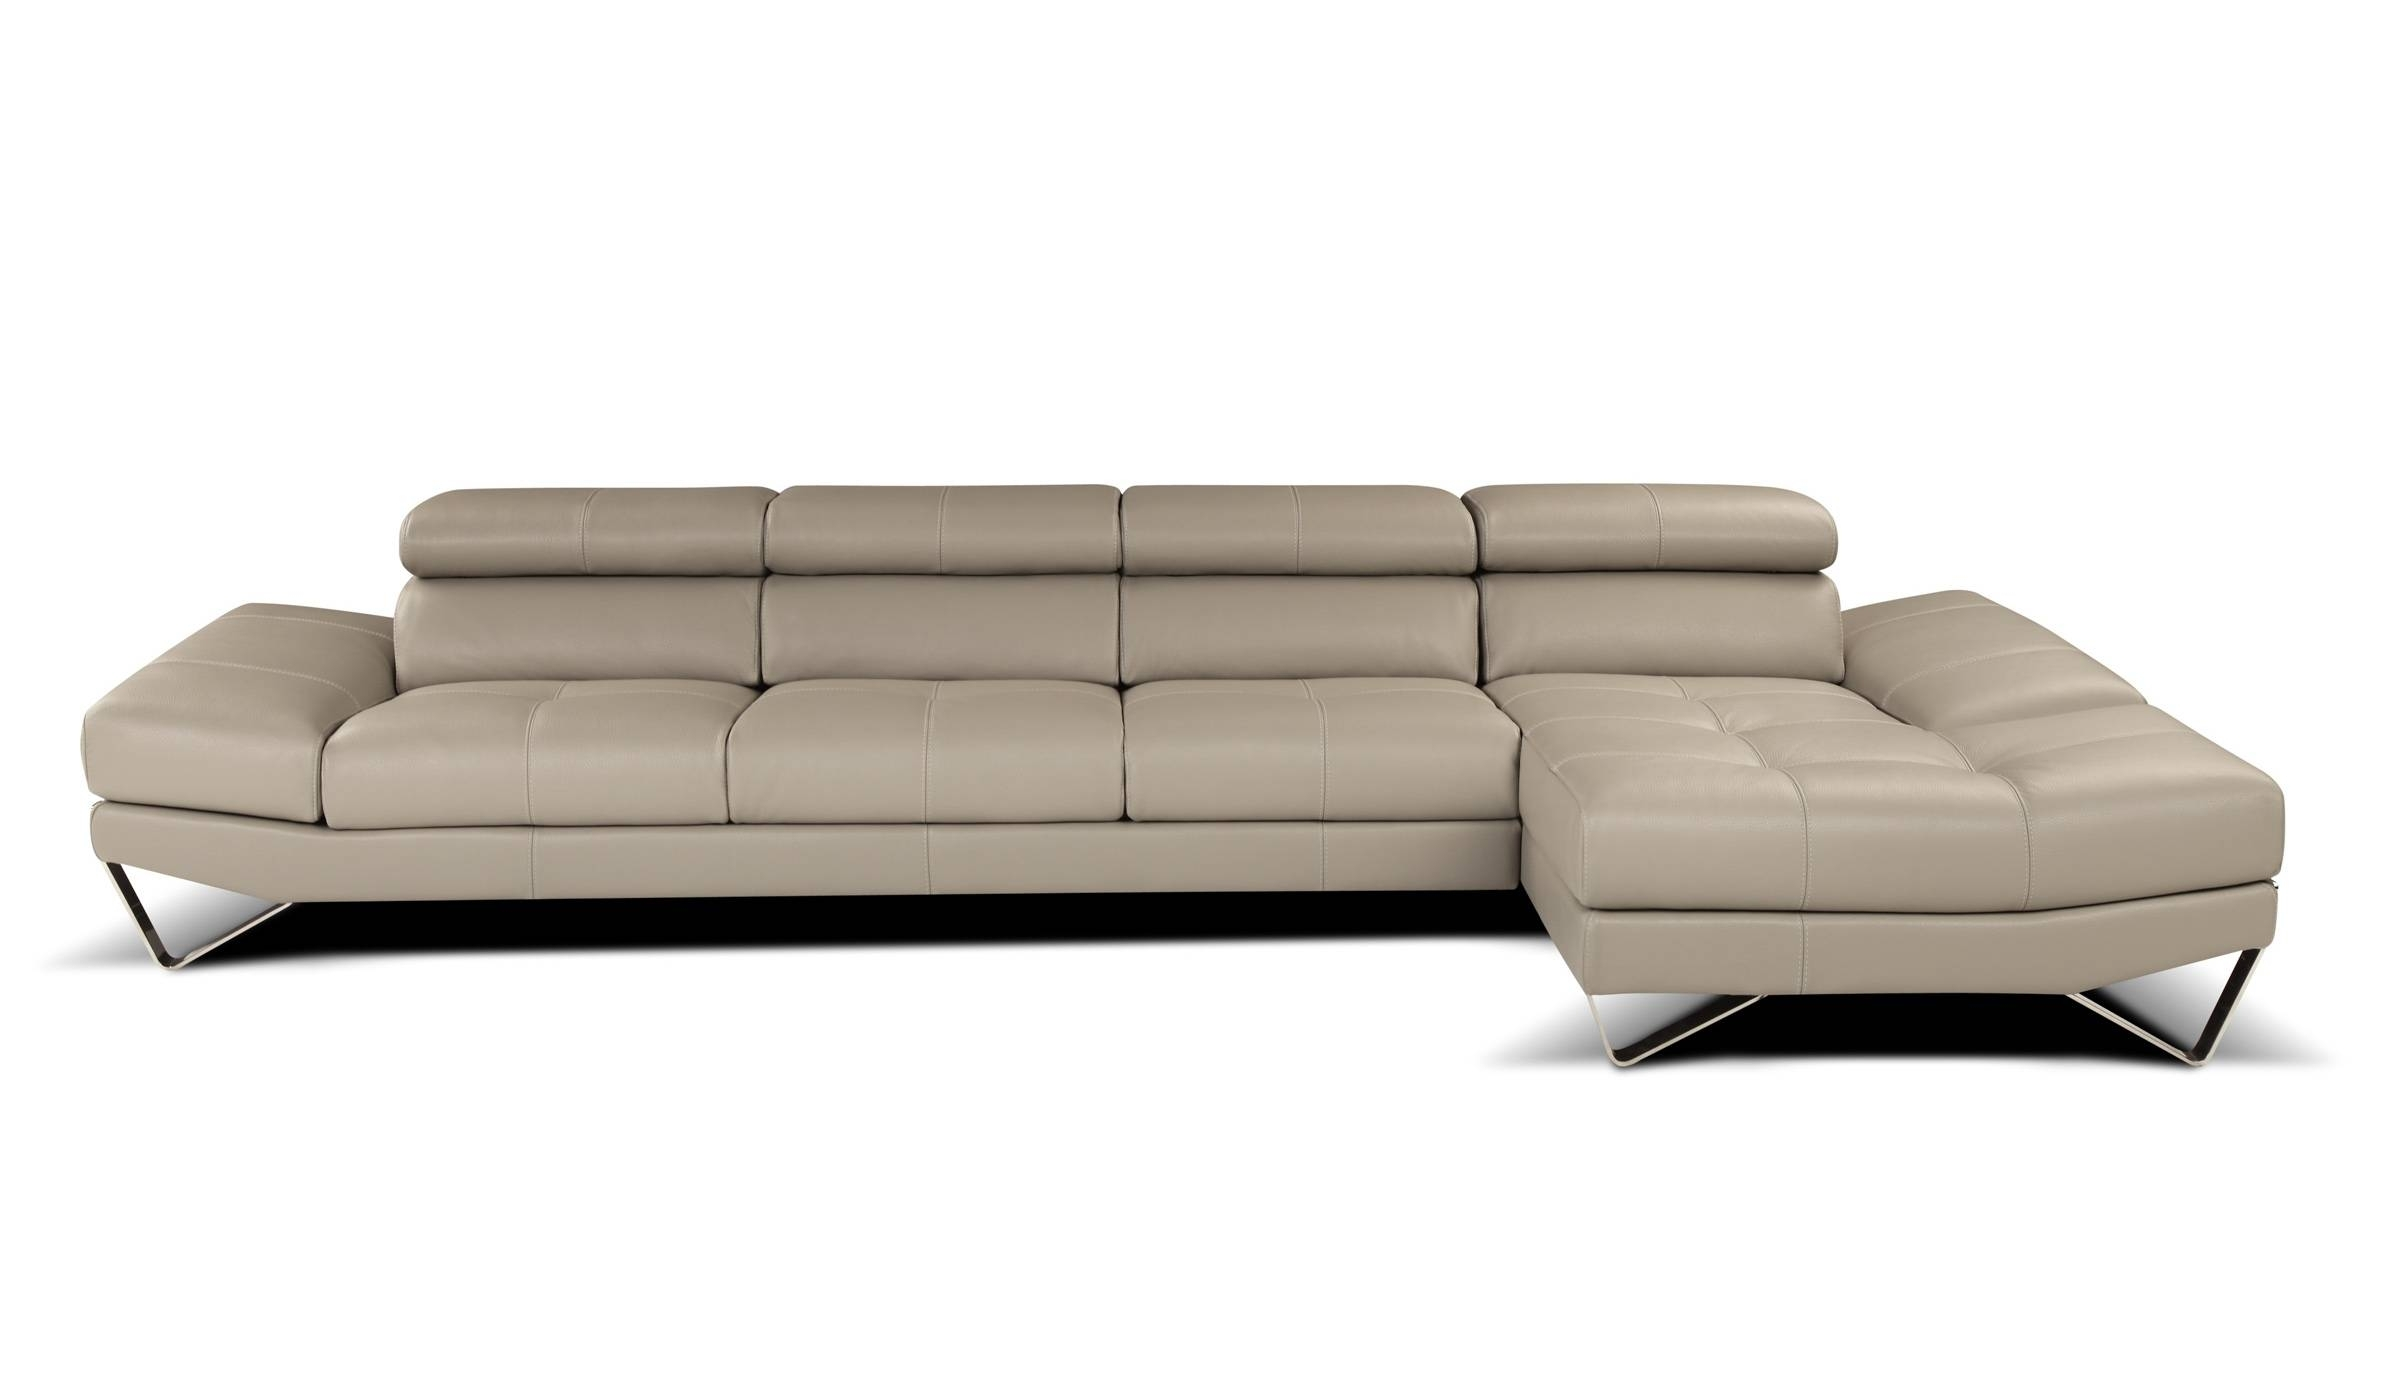 Sophisticated All Italian Leather Sectional Sofa Spokane Washington Intended For High End Leather Sectional Sofas (Image 10 of 10)